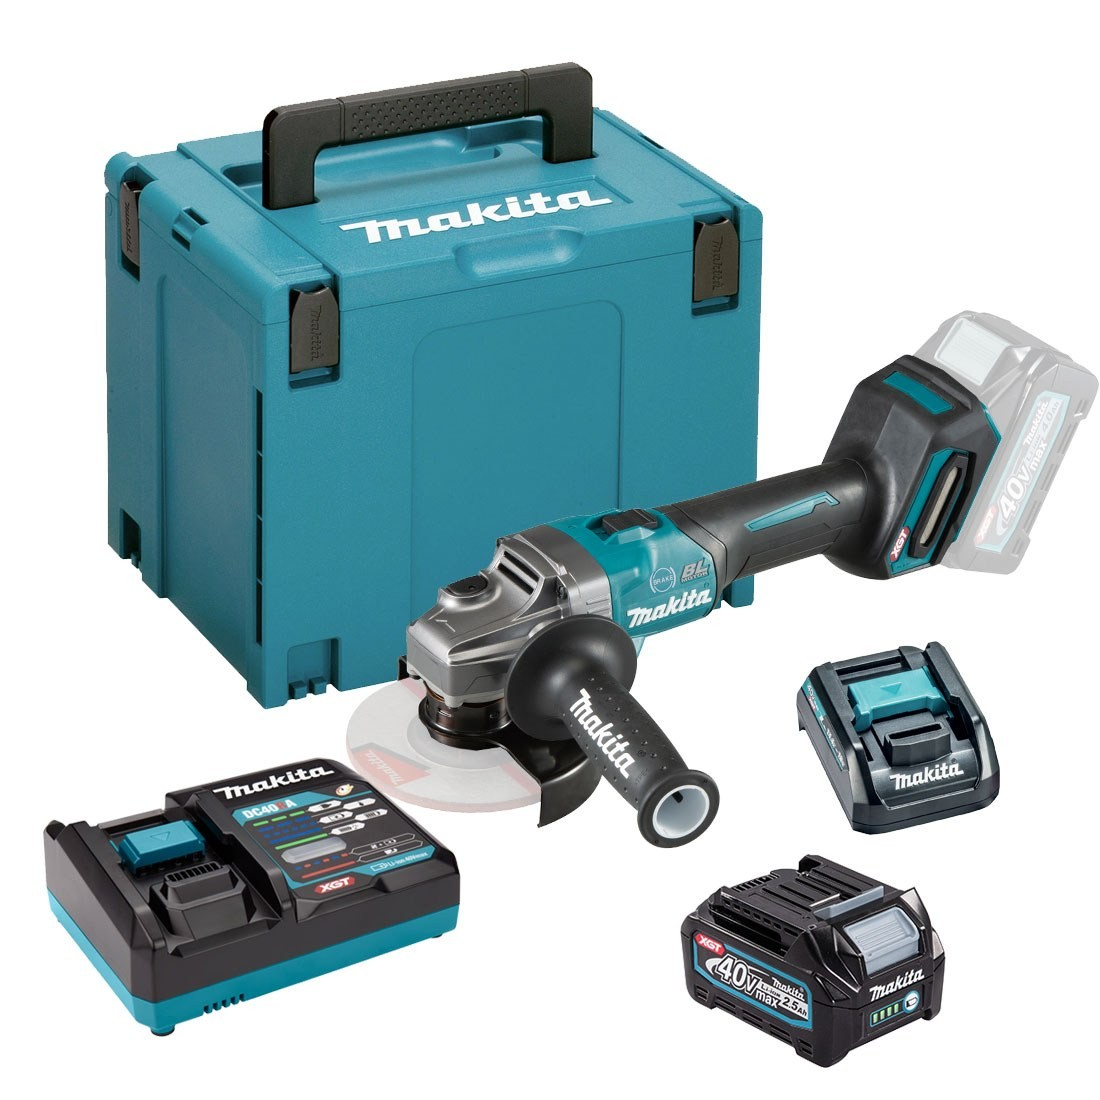 Makita GA005GD101 40v XGT Brushless 125mm Angle Grinder, 1 x 2.5ah Battery, Charger, Carry Case